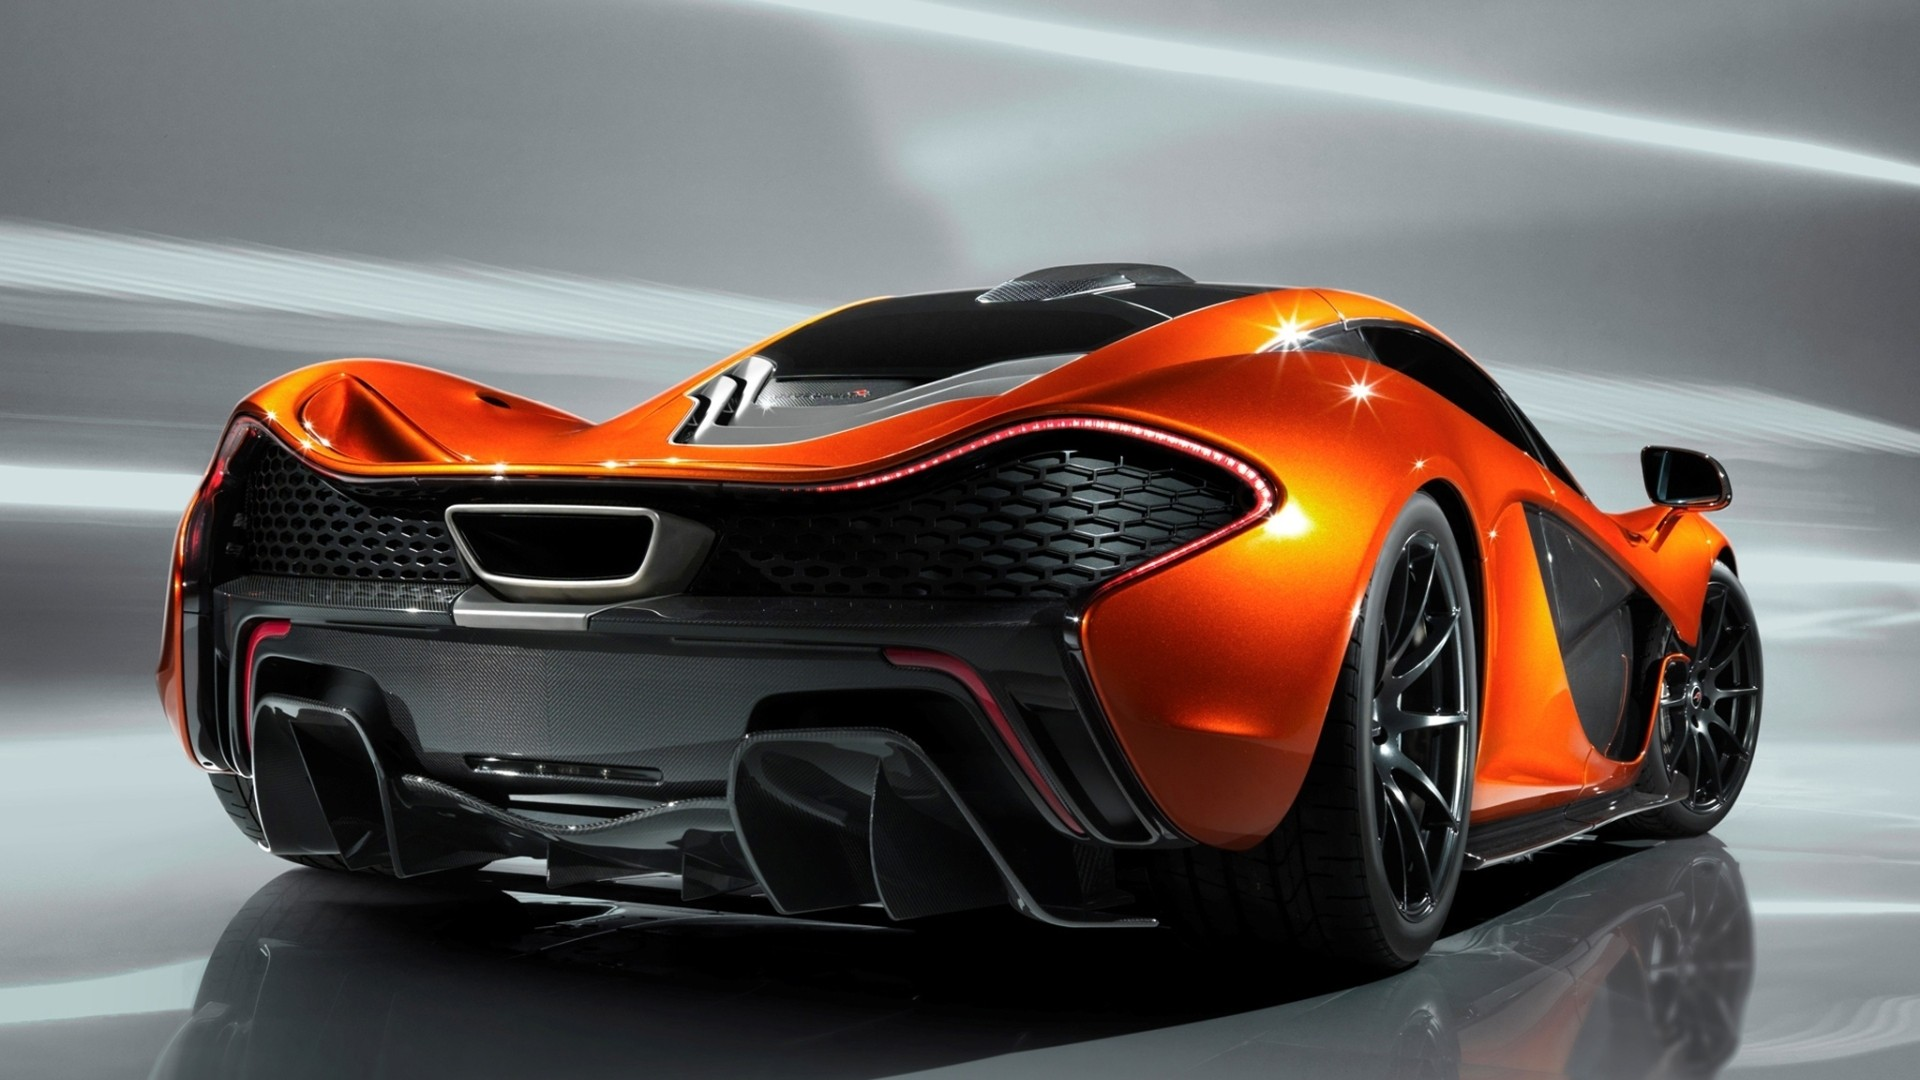 Free Download Fond Ecran Hd Gratuit Voiture Car Mclaren P1